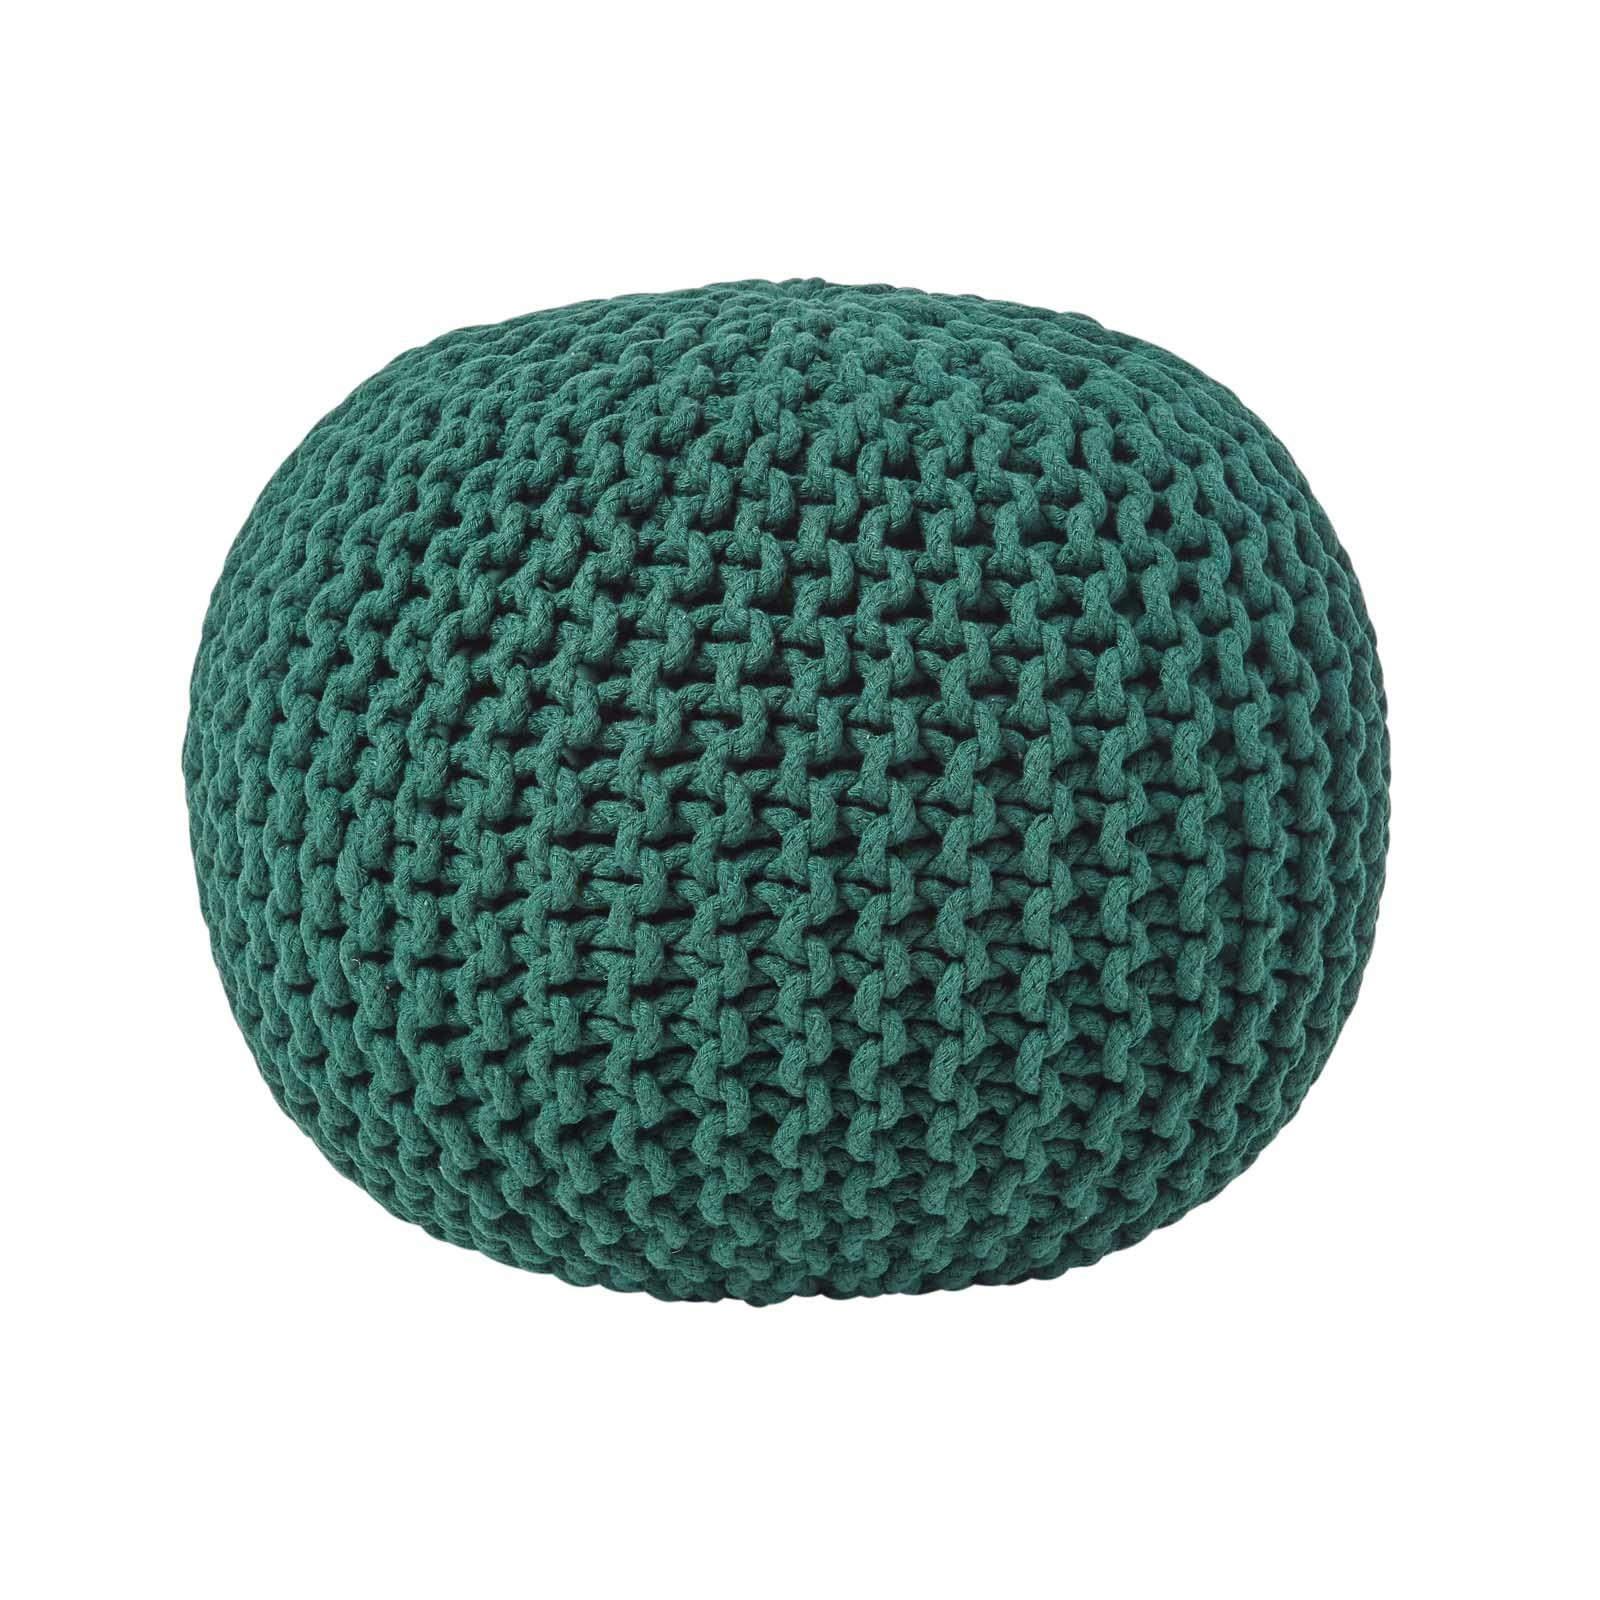 Hand-Knitted-100-Cotton-Pouffes-Round-Sphere-Or-Cube-Square-Chunky-Footstools thumbnail 40